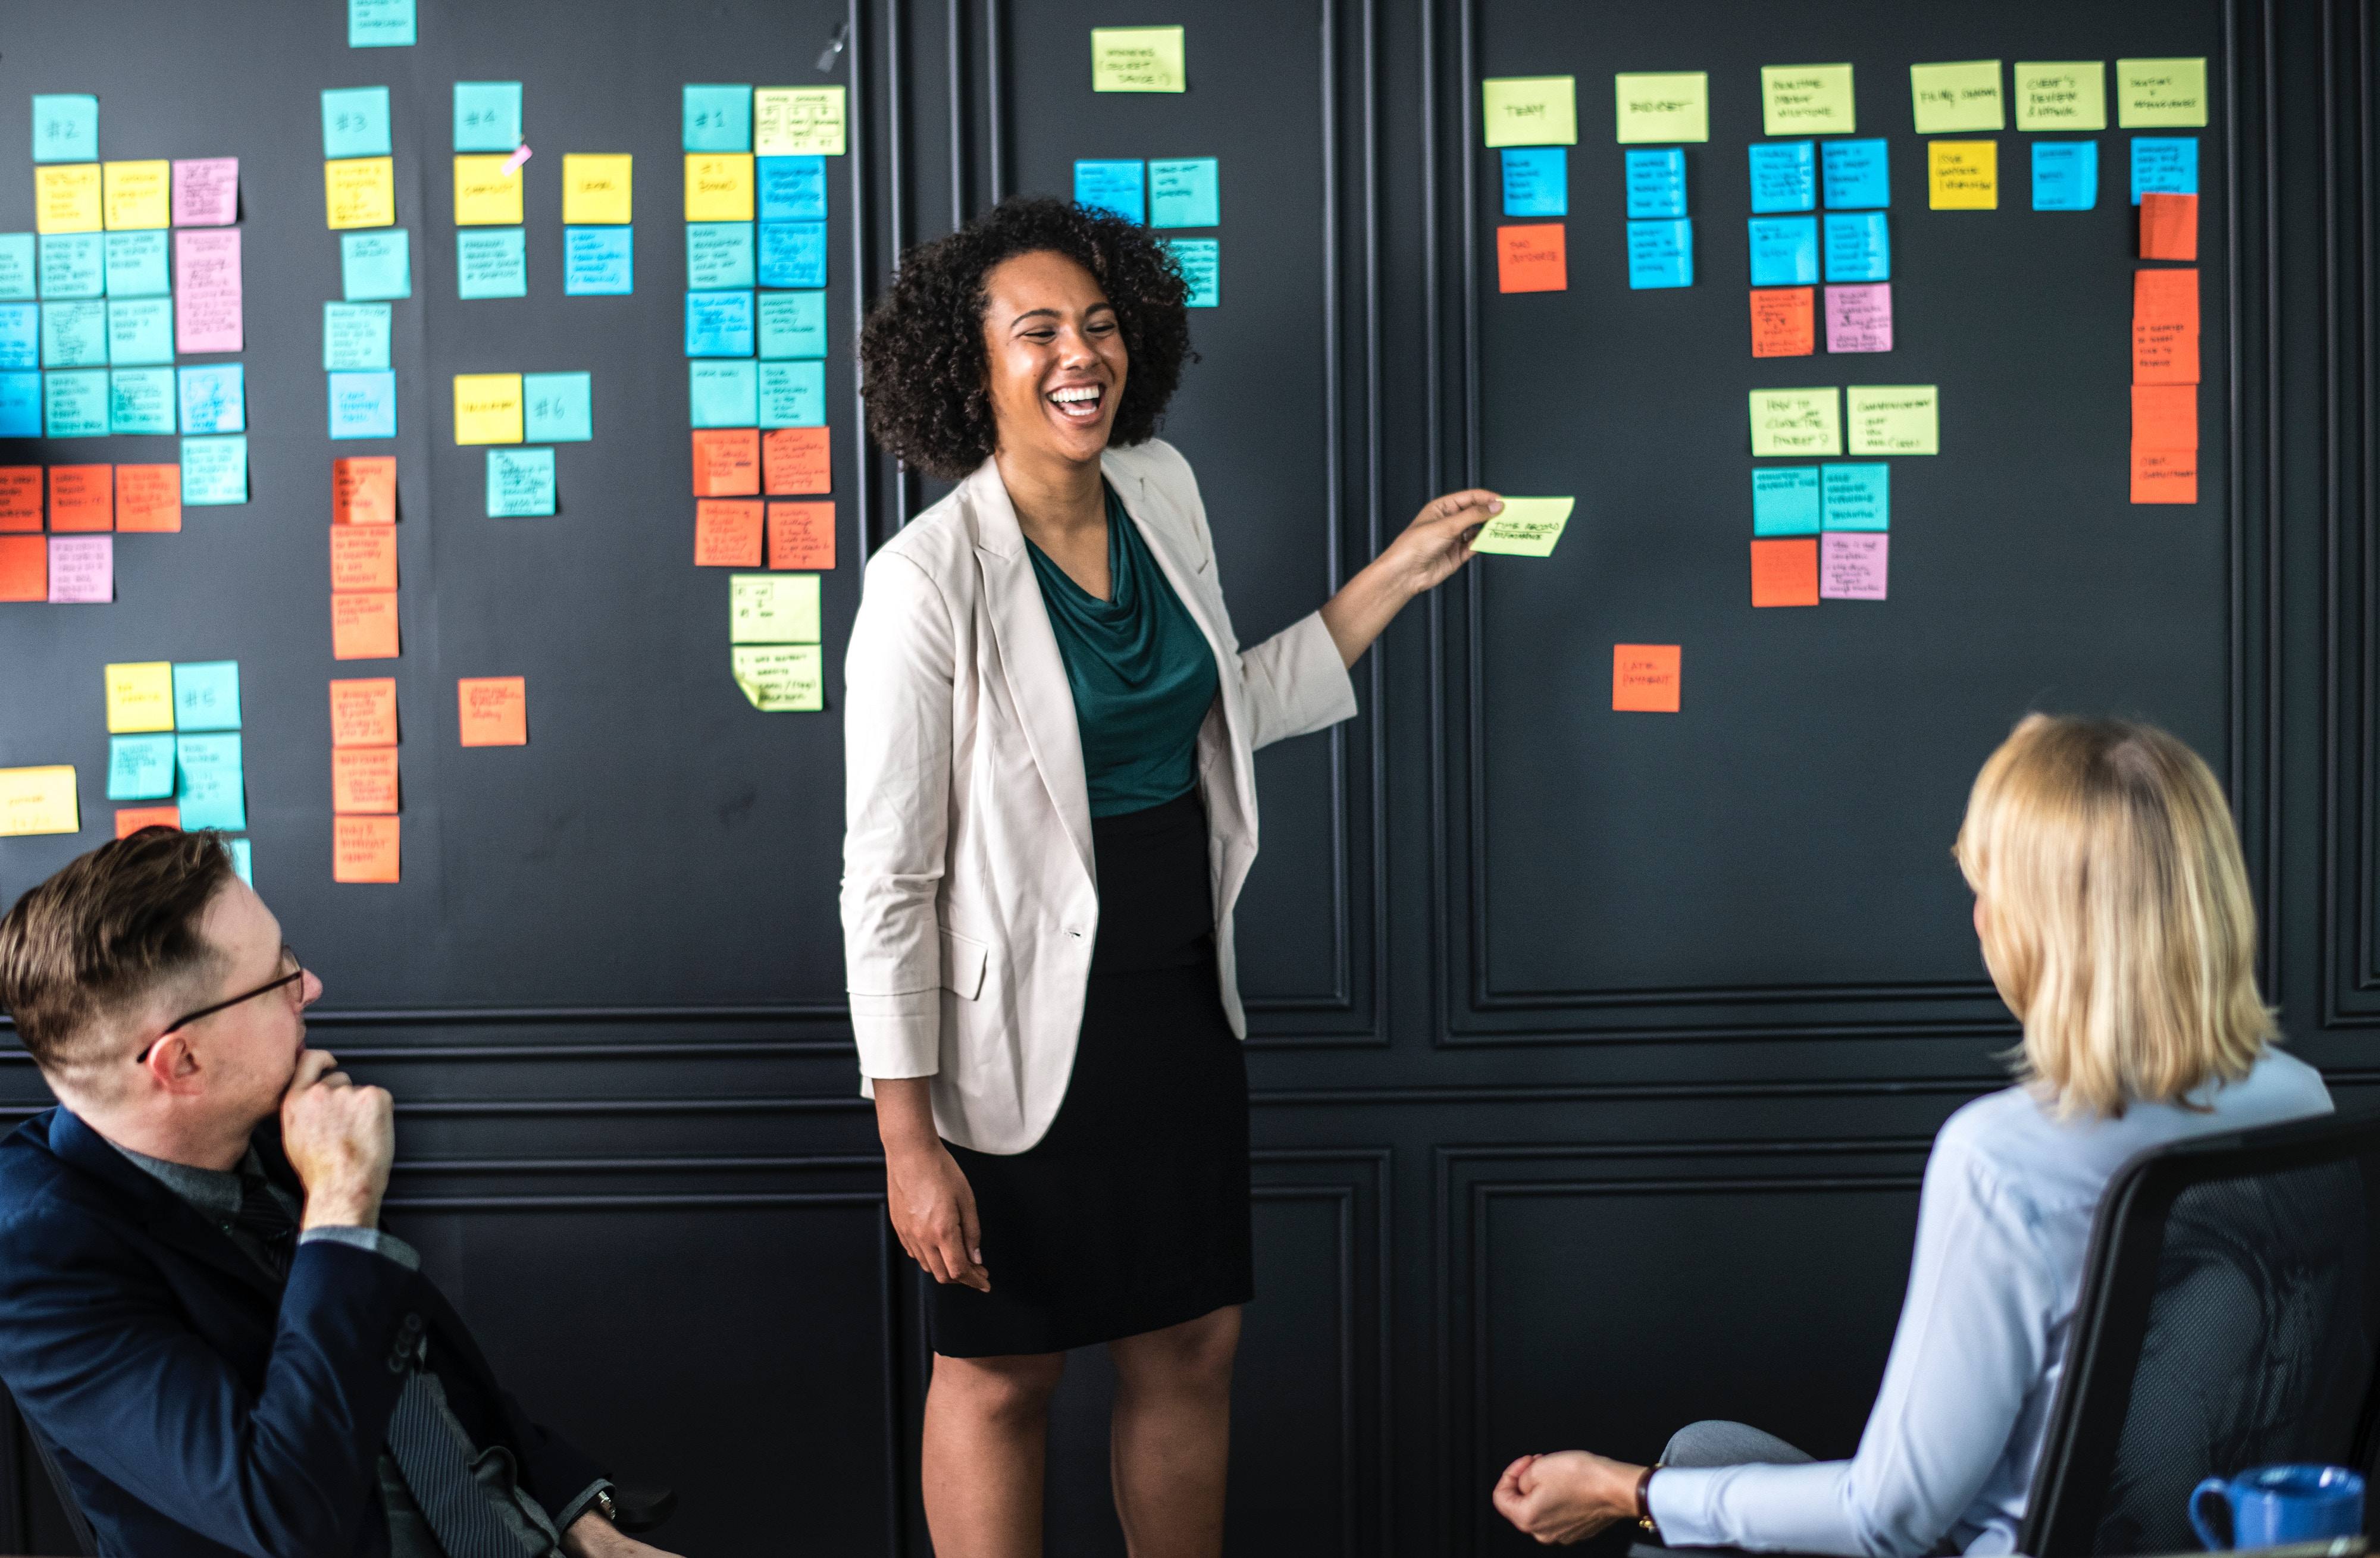 How to Build a Stronger Team and a Great Work Environment